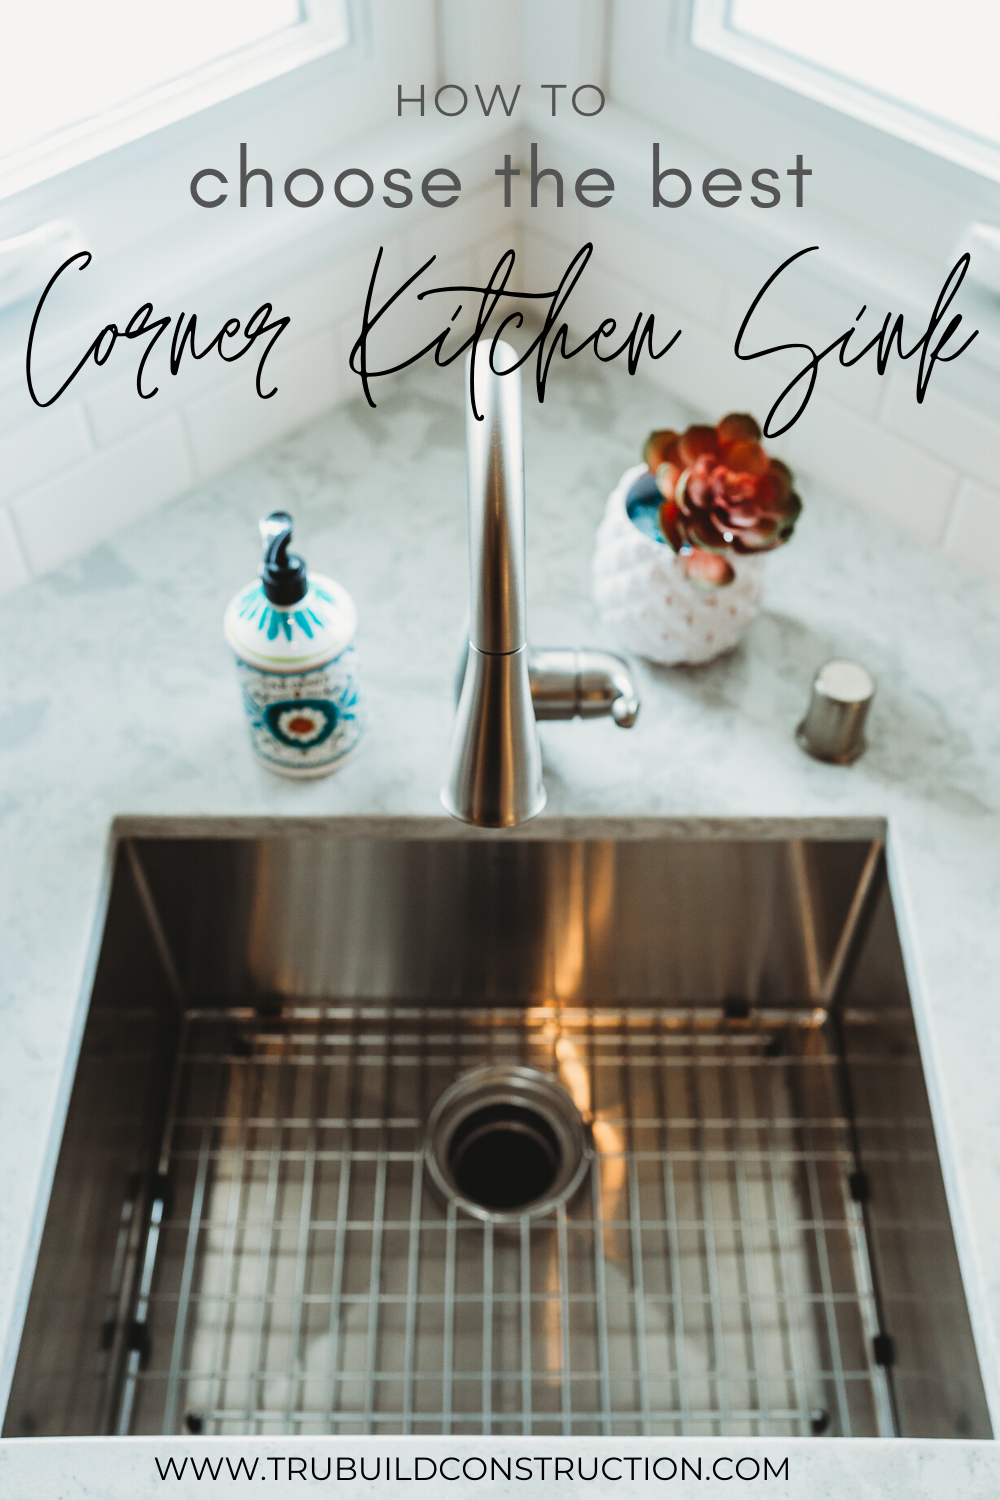 How To Choose The Best Corner Kitchen Sink Trubuild Construction